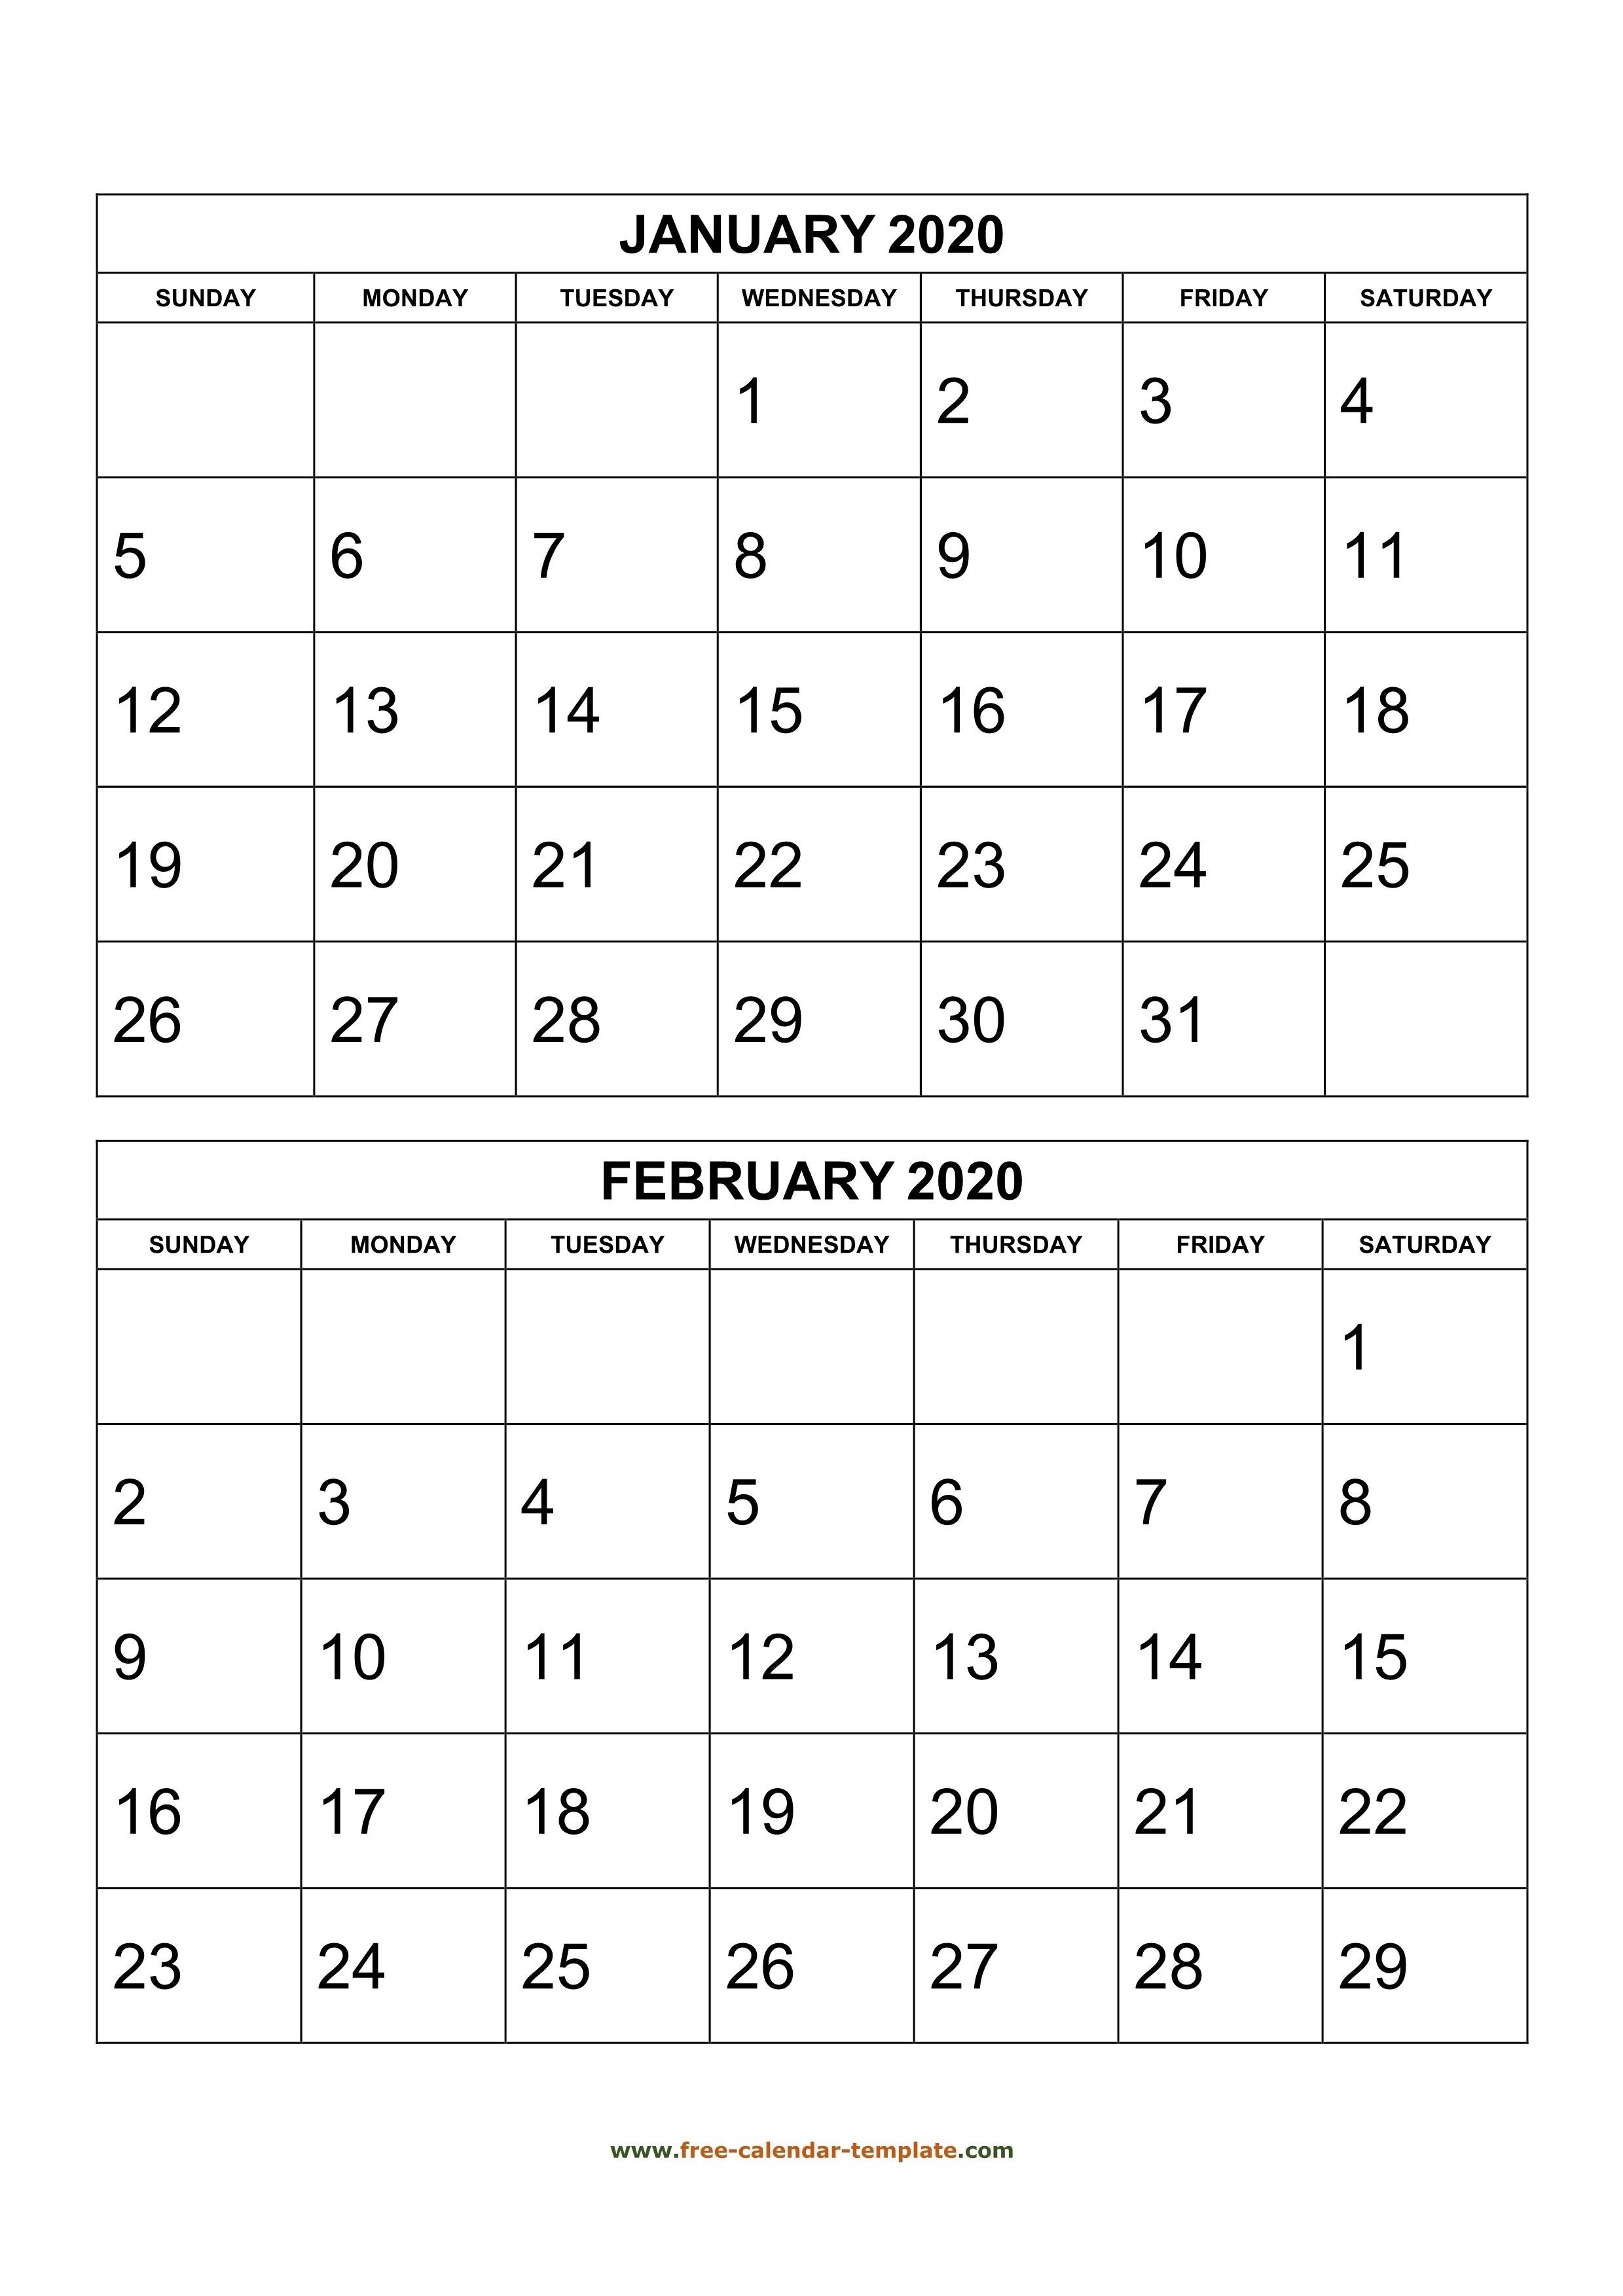 Monthly Calendar 2020, 2 Months Per Page (Vertical)   Free with regard to 2020 Month Calendar Sunday Through Saturday